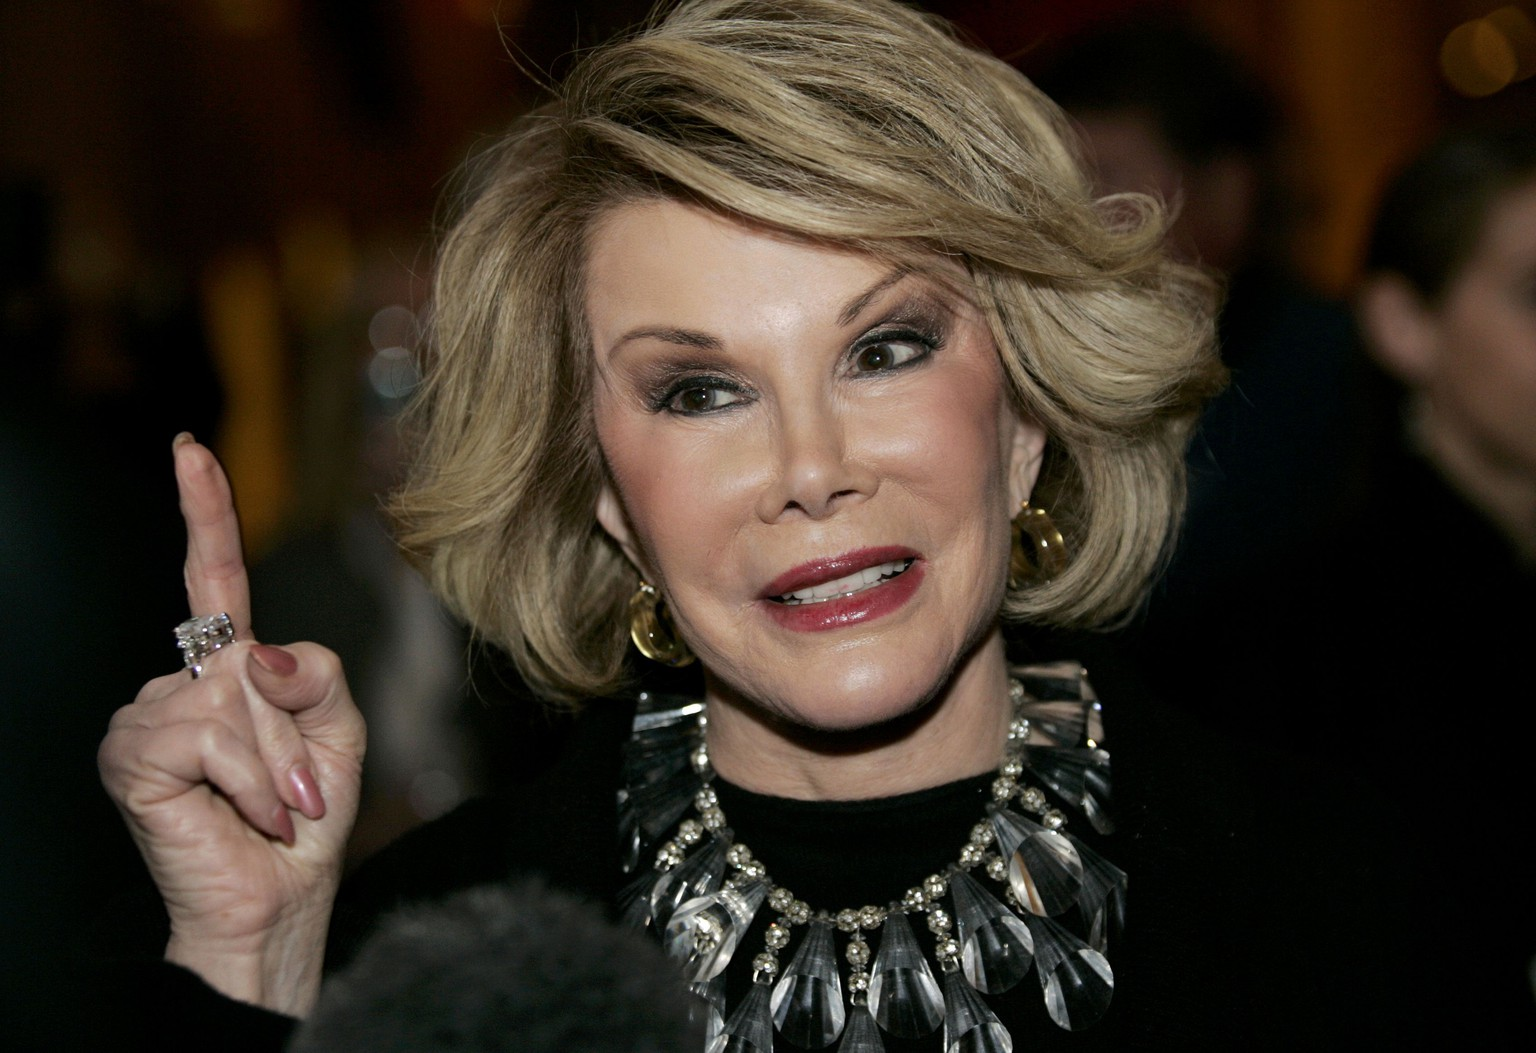 Comedian Joan Rivers talks to reporters as she arrives for a gala honoring the late stand-up comedian George Carlin, the 11th Annual Mark Twain Prize for American Humor recipient, at the Kennedy Center in Washington in this file photo taken November 10, 2008.  Acerbic comedian and fashion critic Joan Rivers was rushed to a New York hospital on August 28, 2014 after she stopped breathing during surgery on her vocal chords, reported NBC New York.    REUTERS/Molly Riley/Files  (UNITED STATES  - Tags: ENTERTAINMENT HEADSHOT)